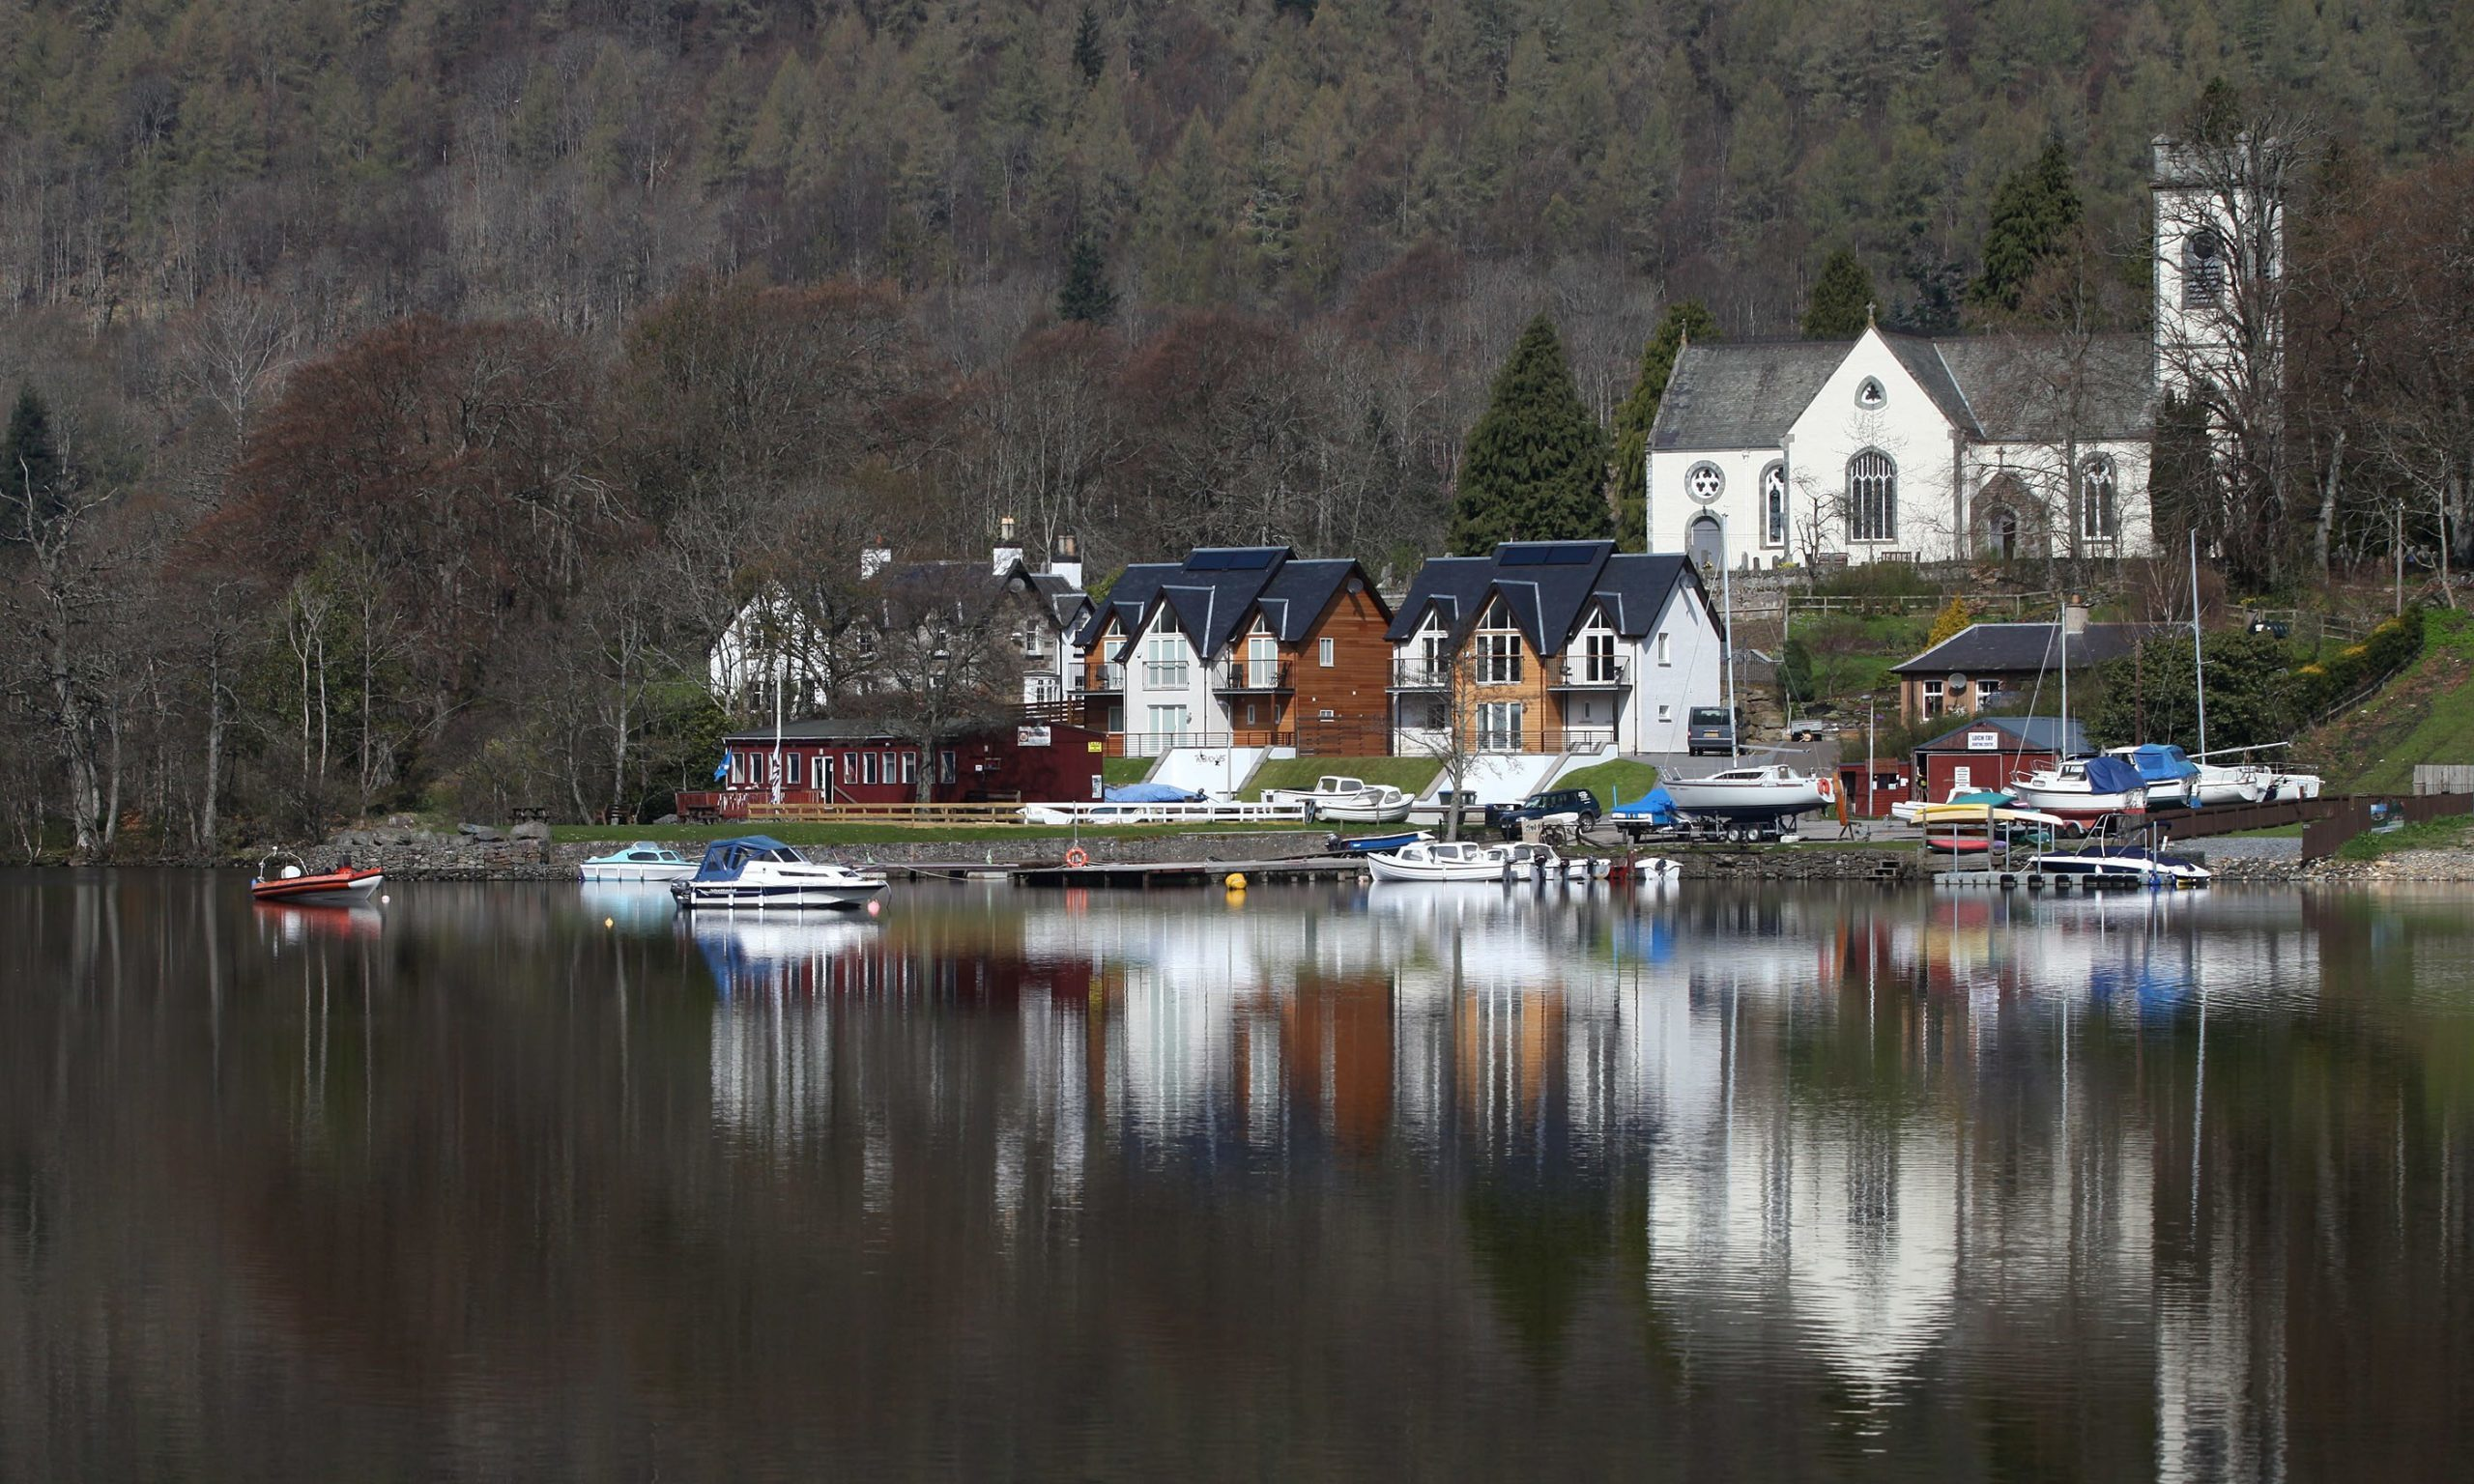 Anglers are travelling across Scotland to fish at Loch Tay in Kenmore.